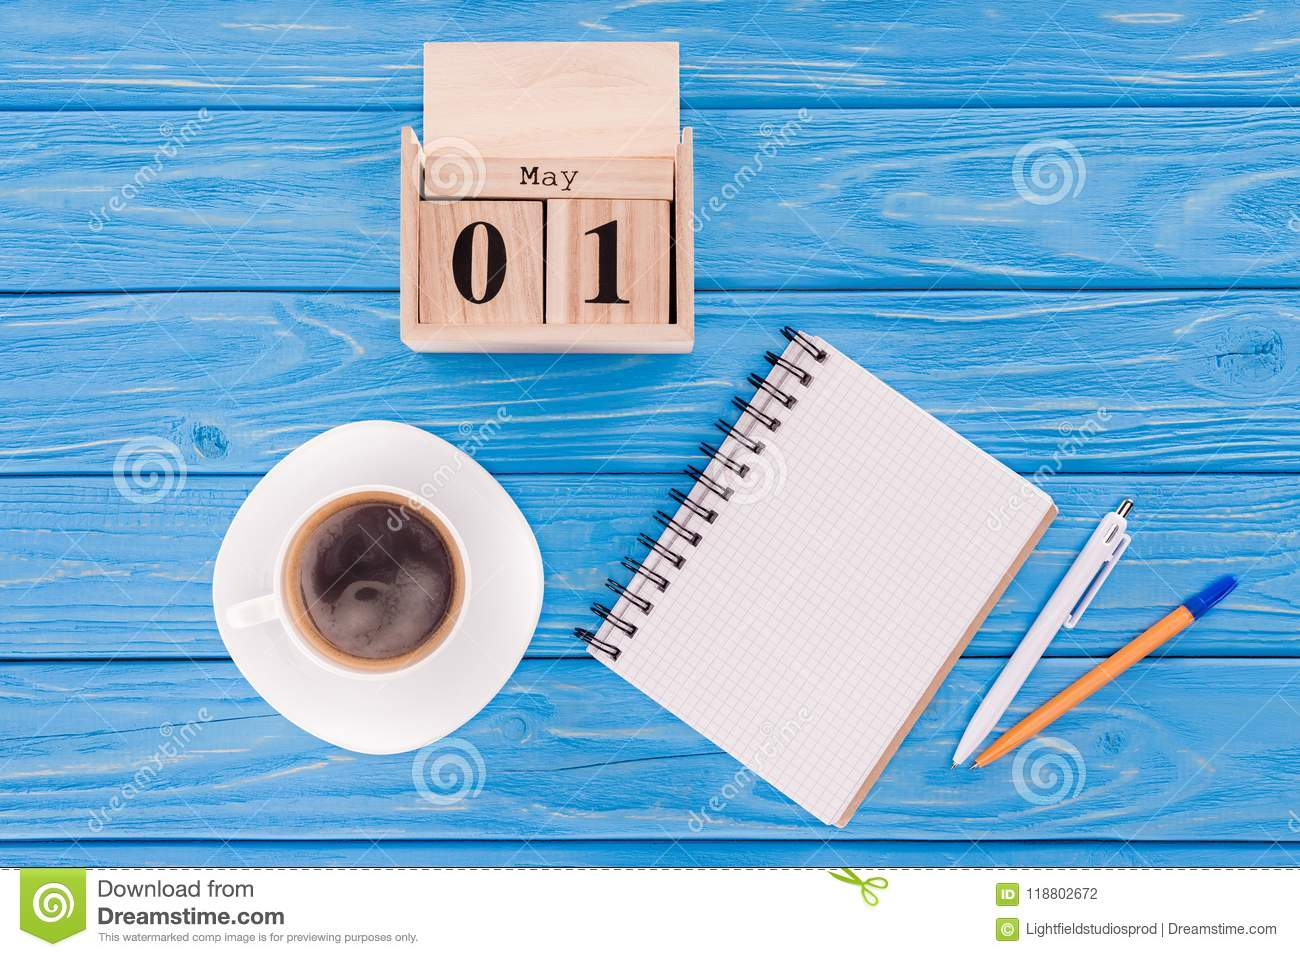 top view of wooden calendar with date of 1st may, coffee cup, blank textbook and pens, international workers day concept